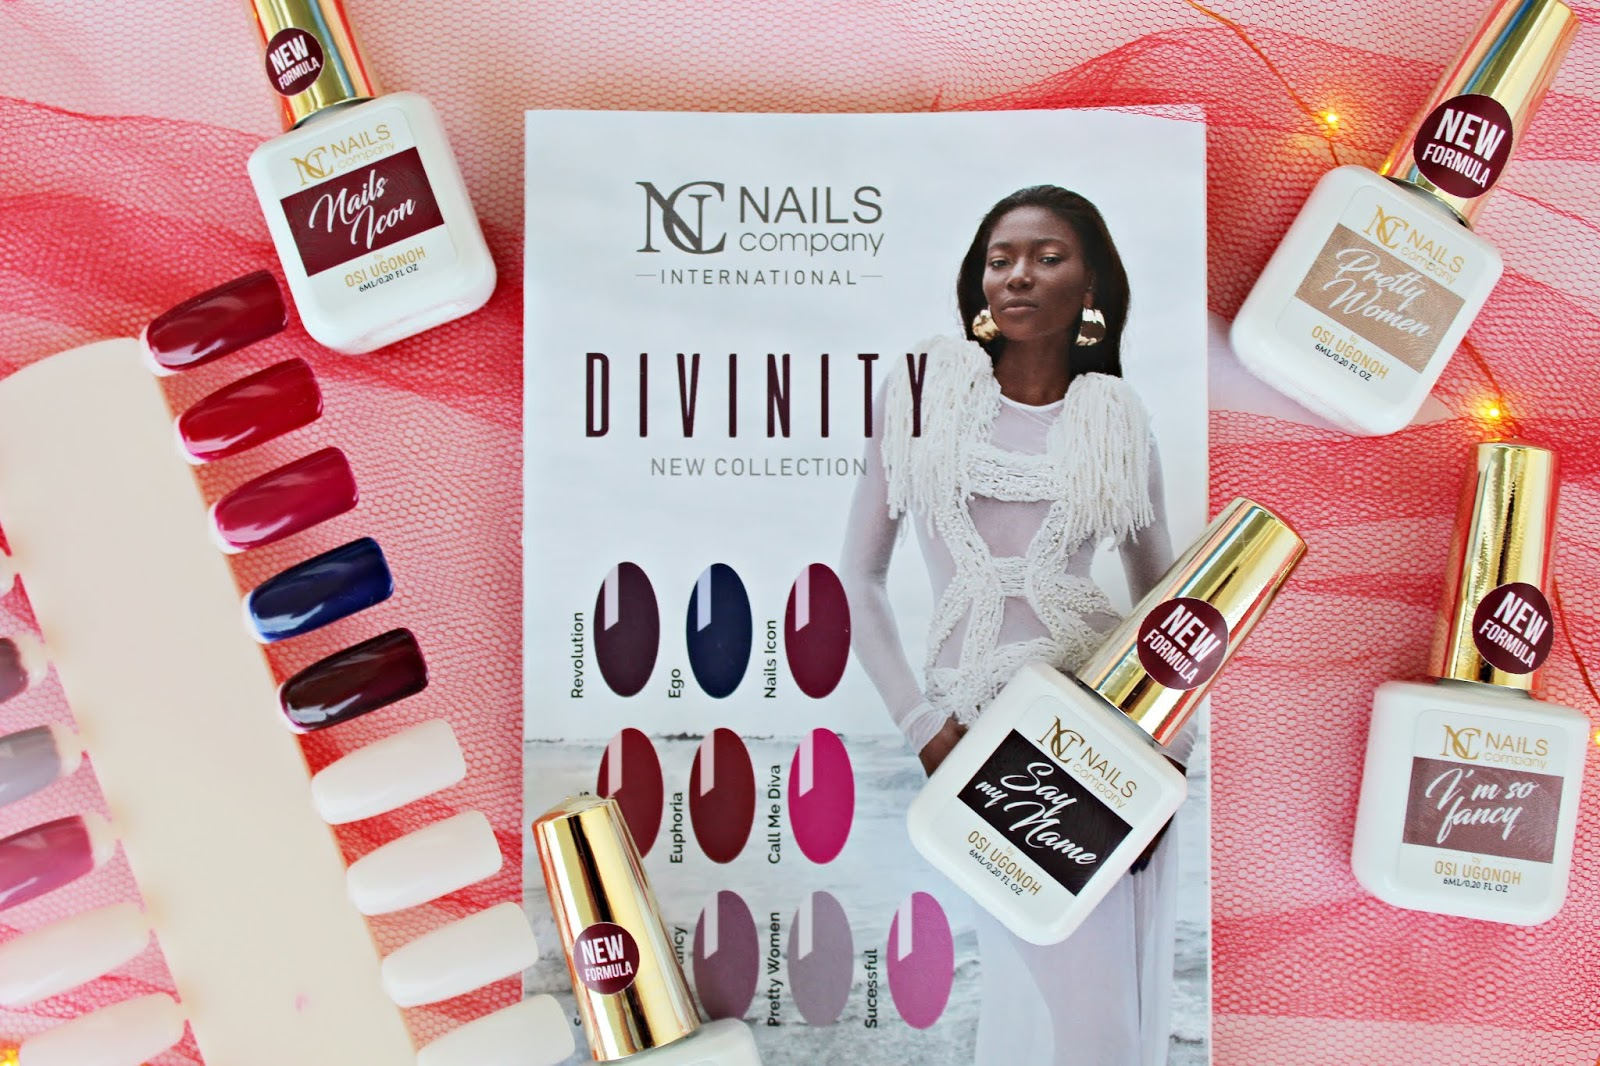 Nails Company - DIVINITY new collection by Osi Ugonoh